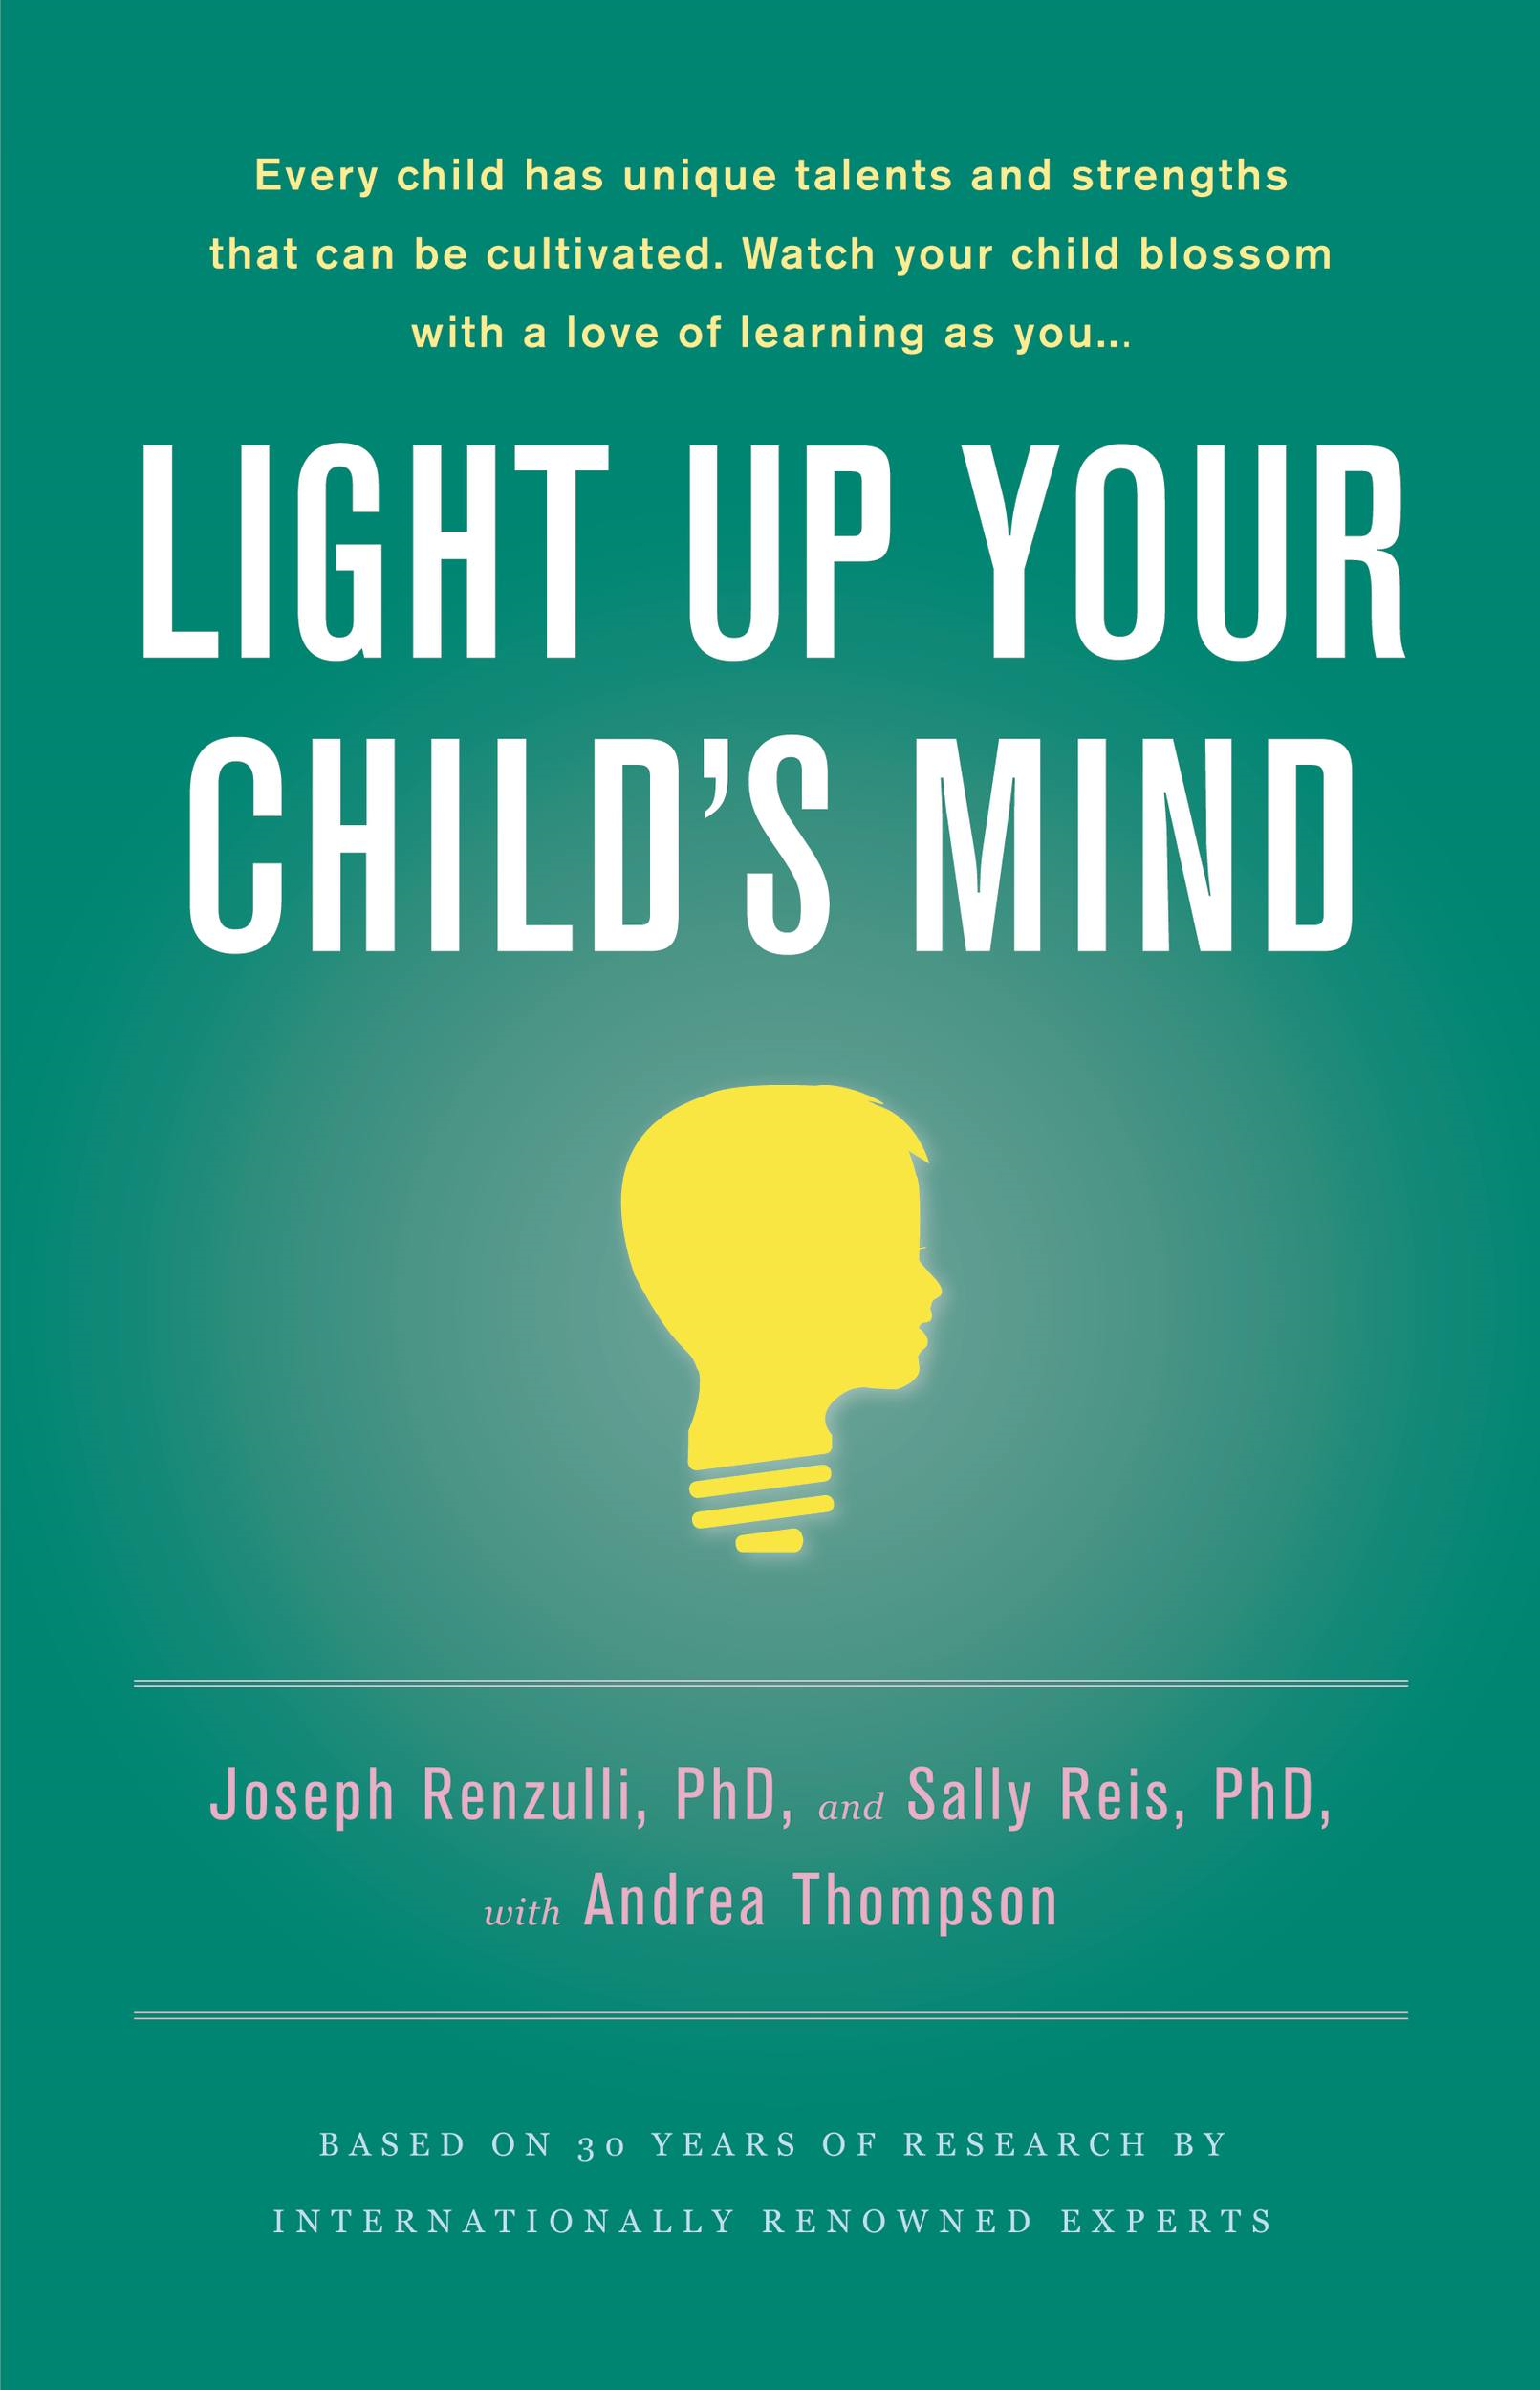 Light Up Your Child's Mind